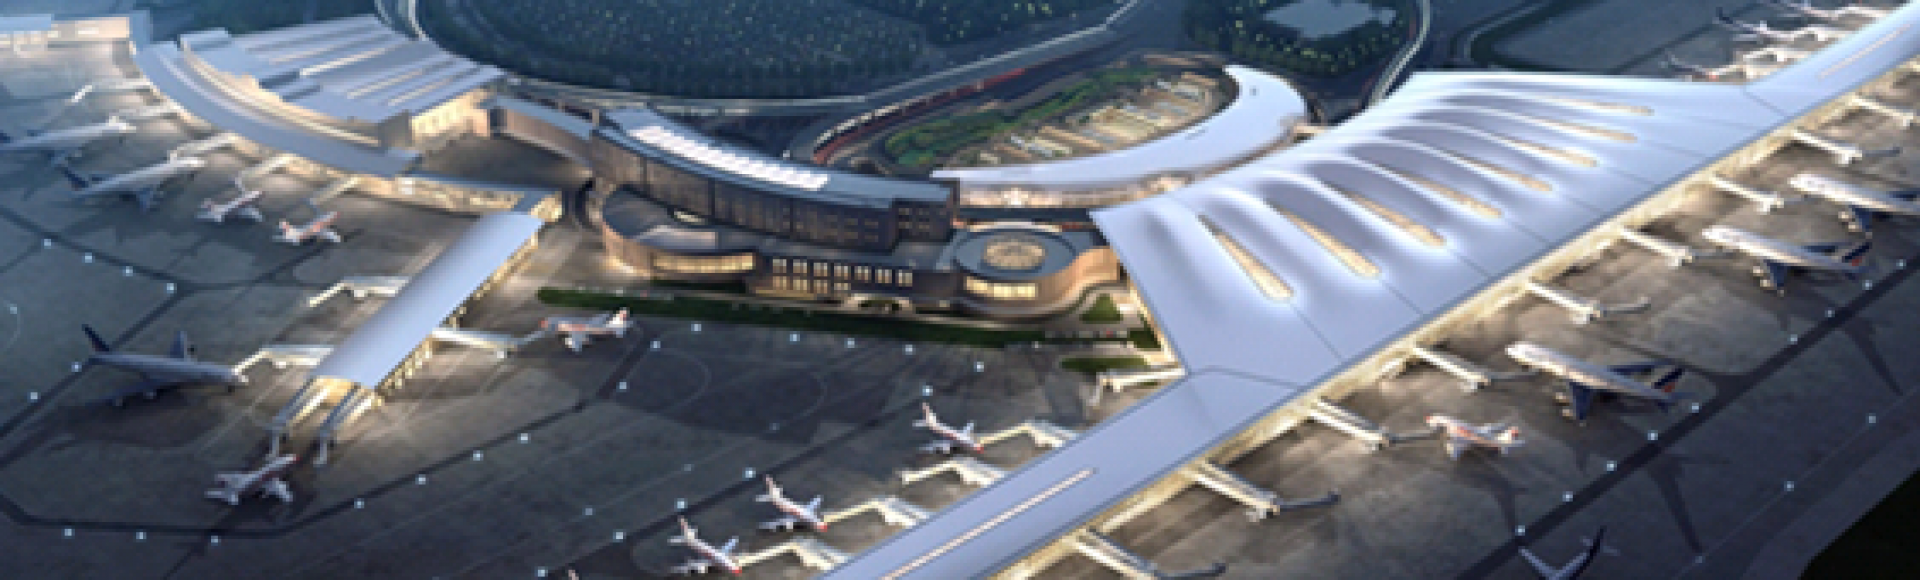 Nanjing International Airport